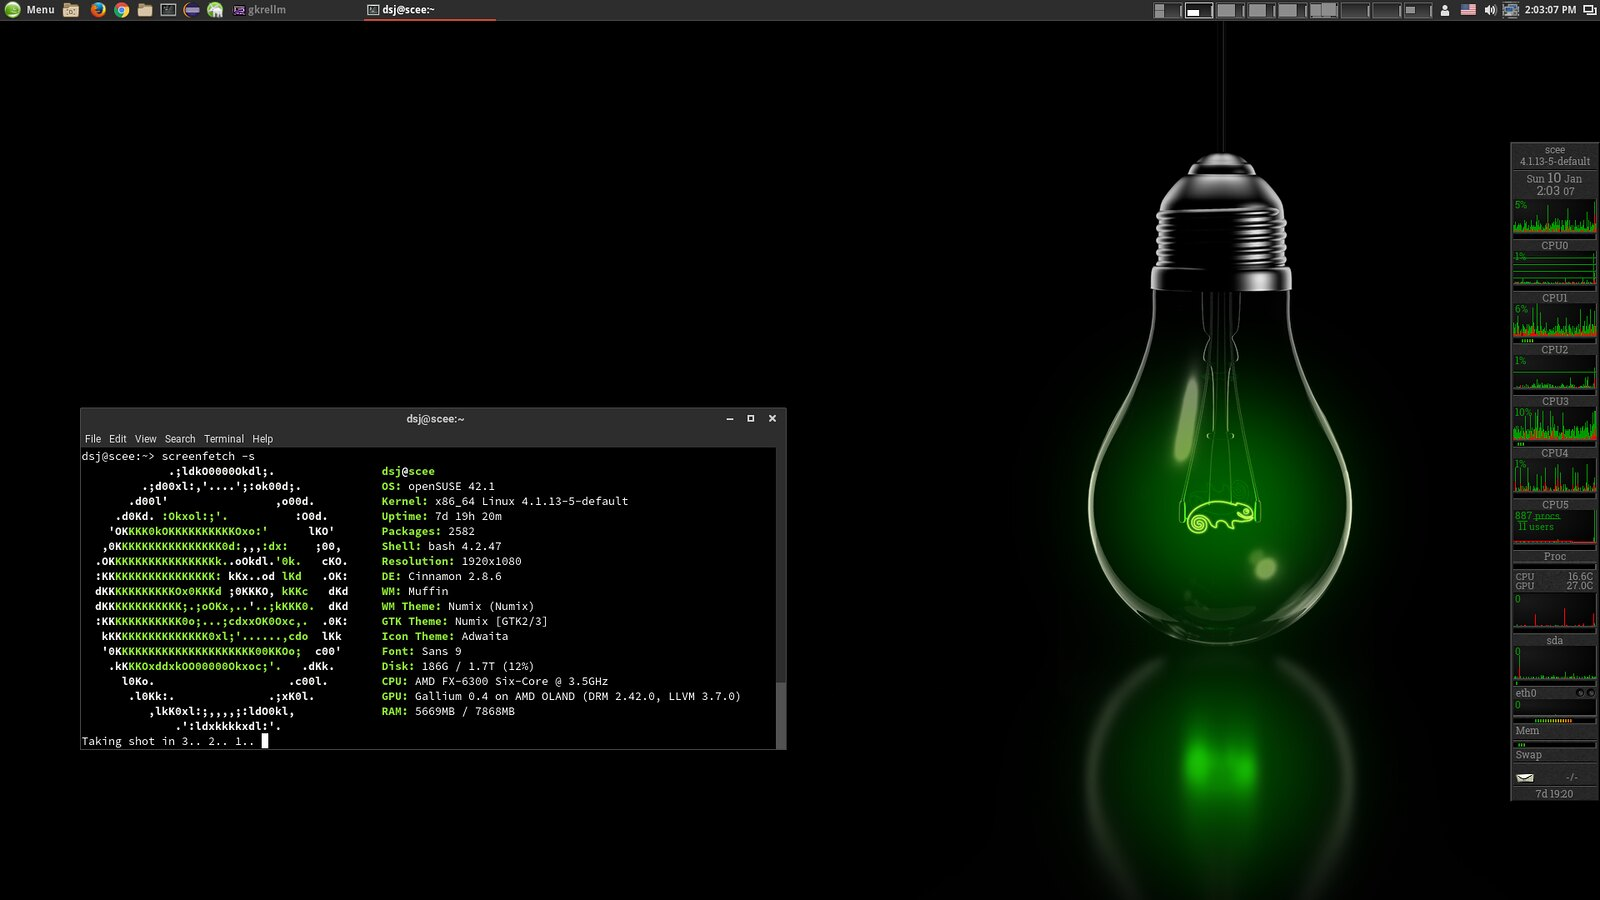 OpenSuse 42.1 Screenshot